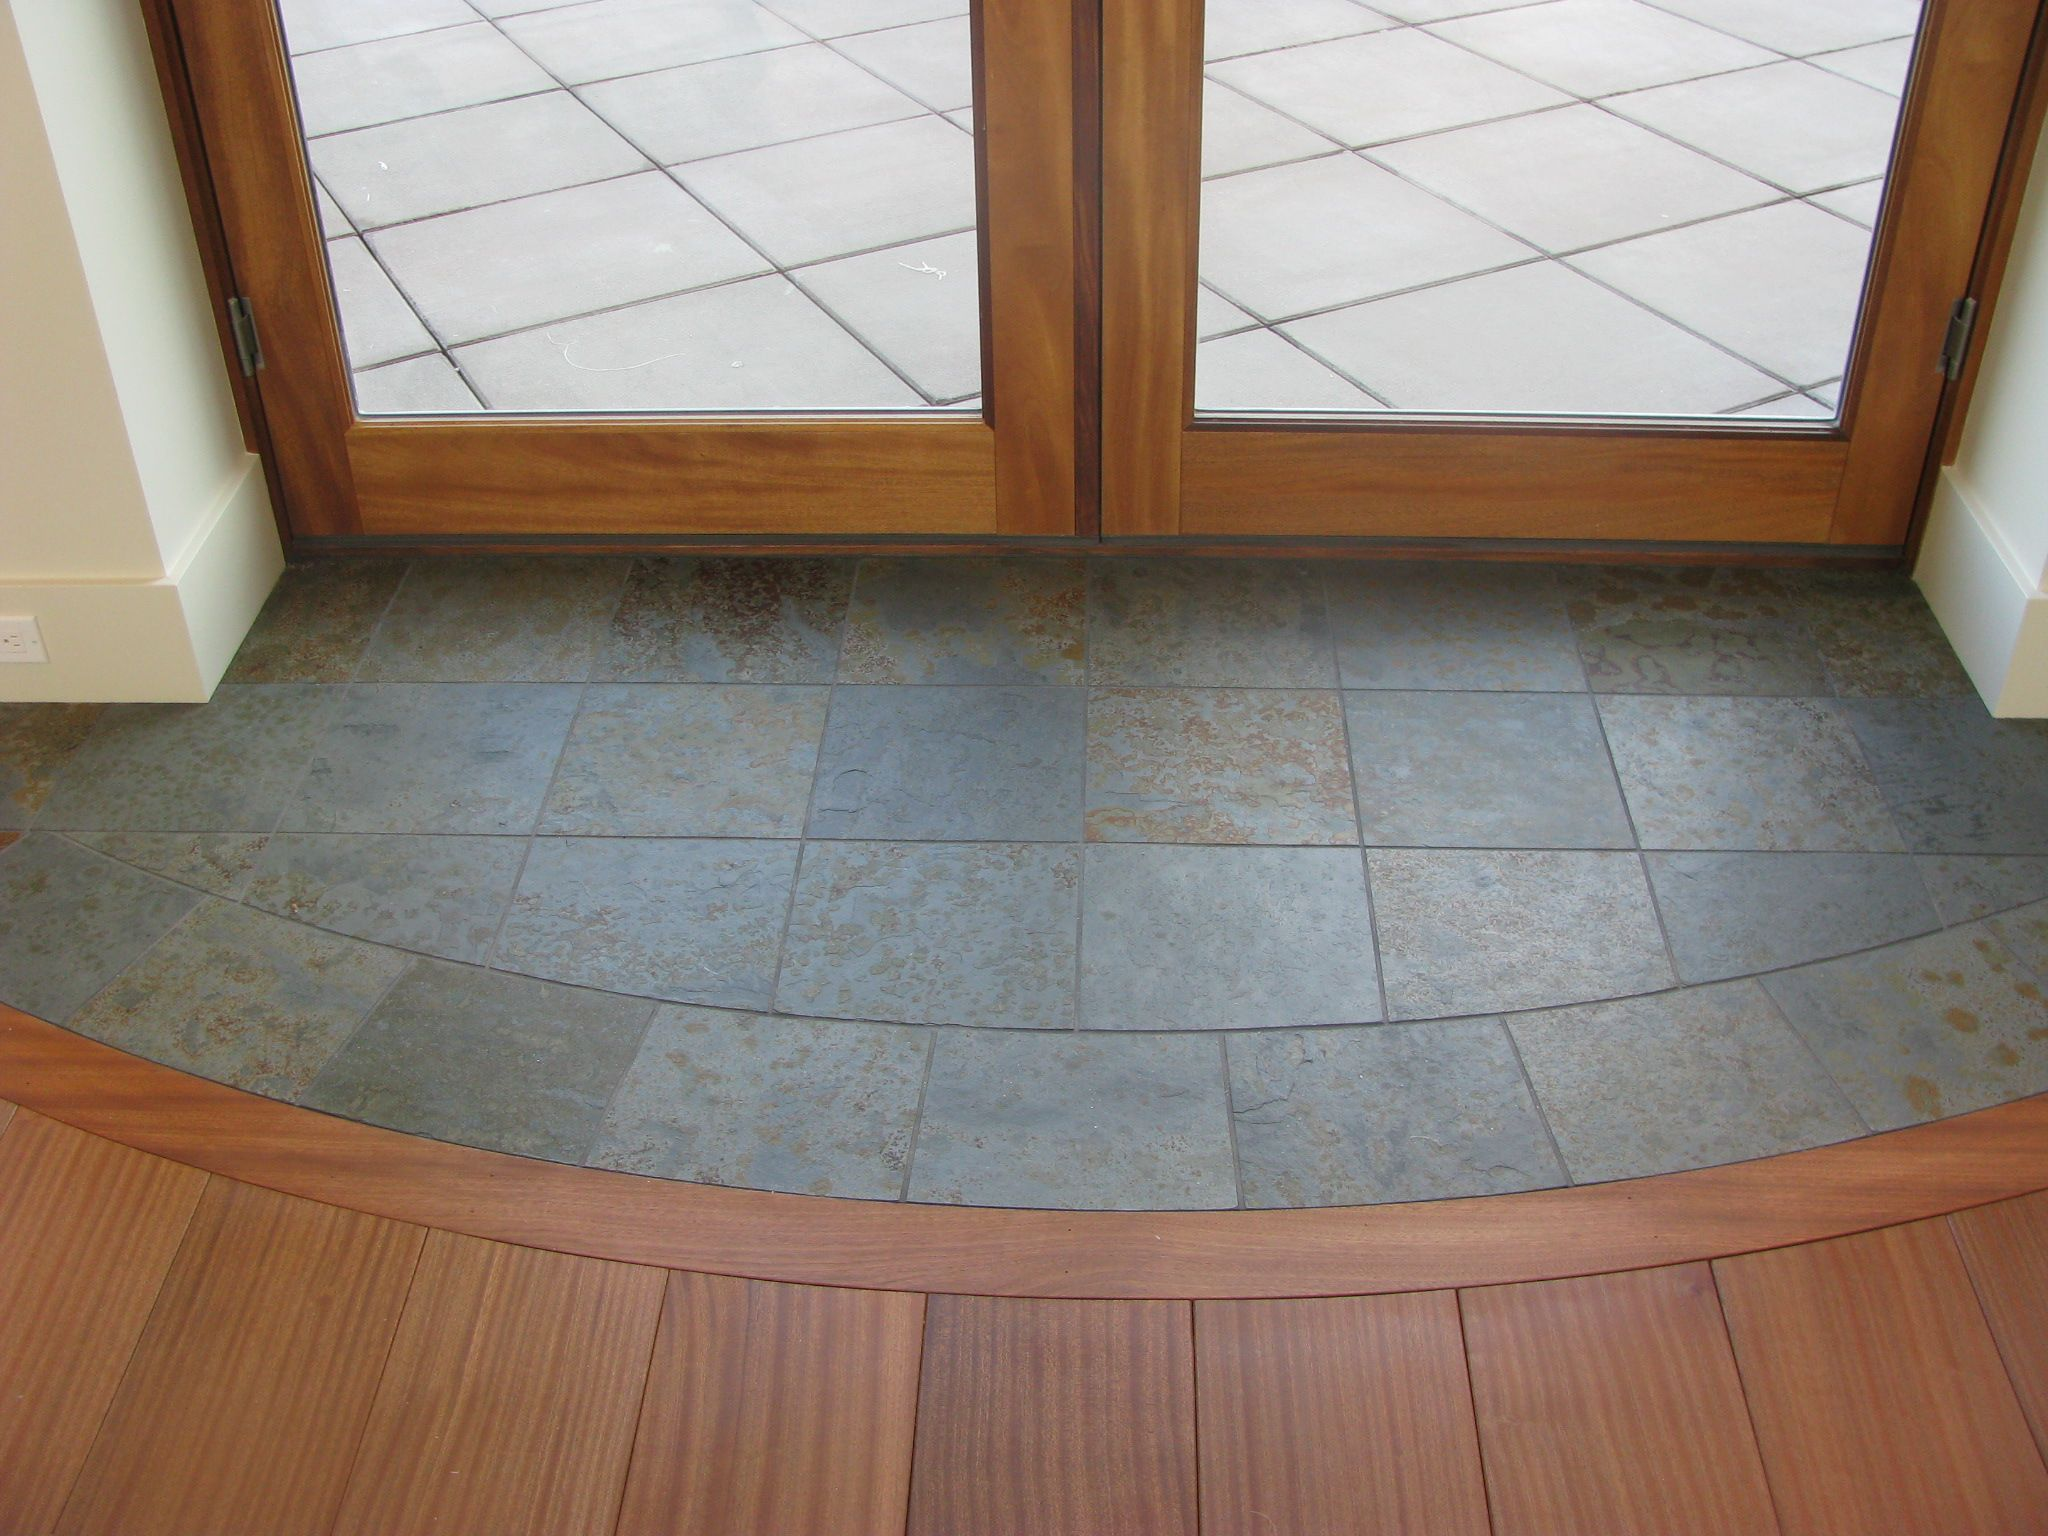 Slate entryway to protect hardwood floors at French Door. for when I finally rip all the tile and carpet out and do hardwood! Love the pattern flow into the ... & Slate entryway to protect hardwood floors at French Door. for when ... Pezcame.Com